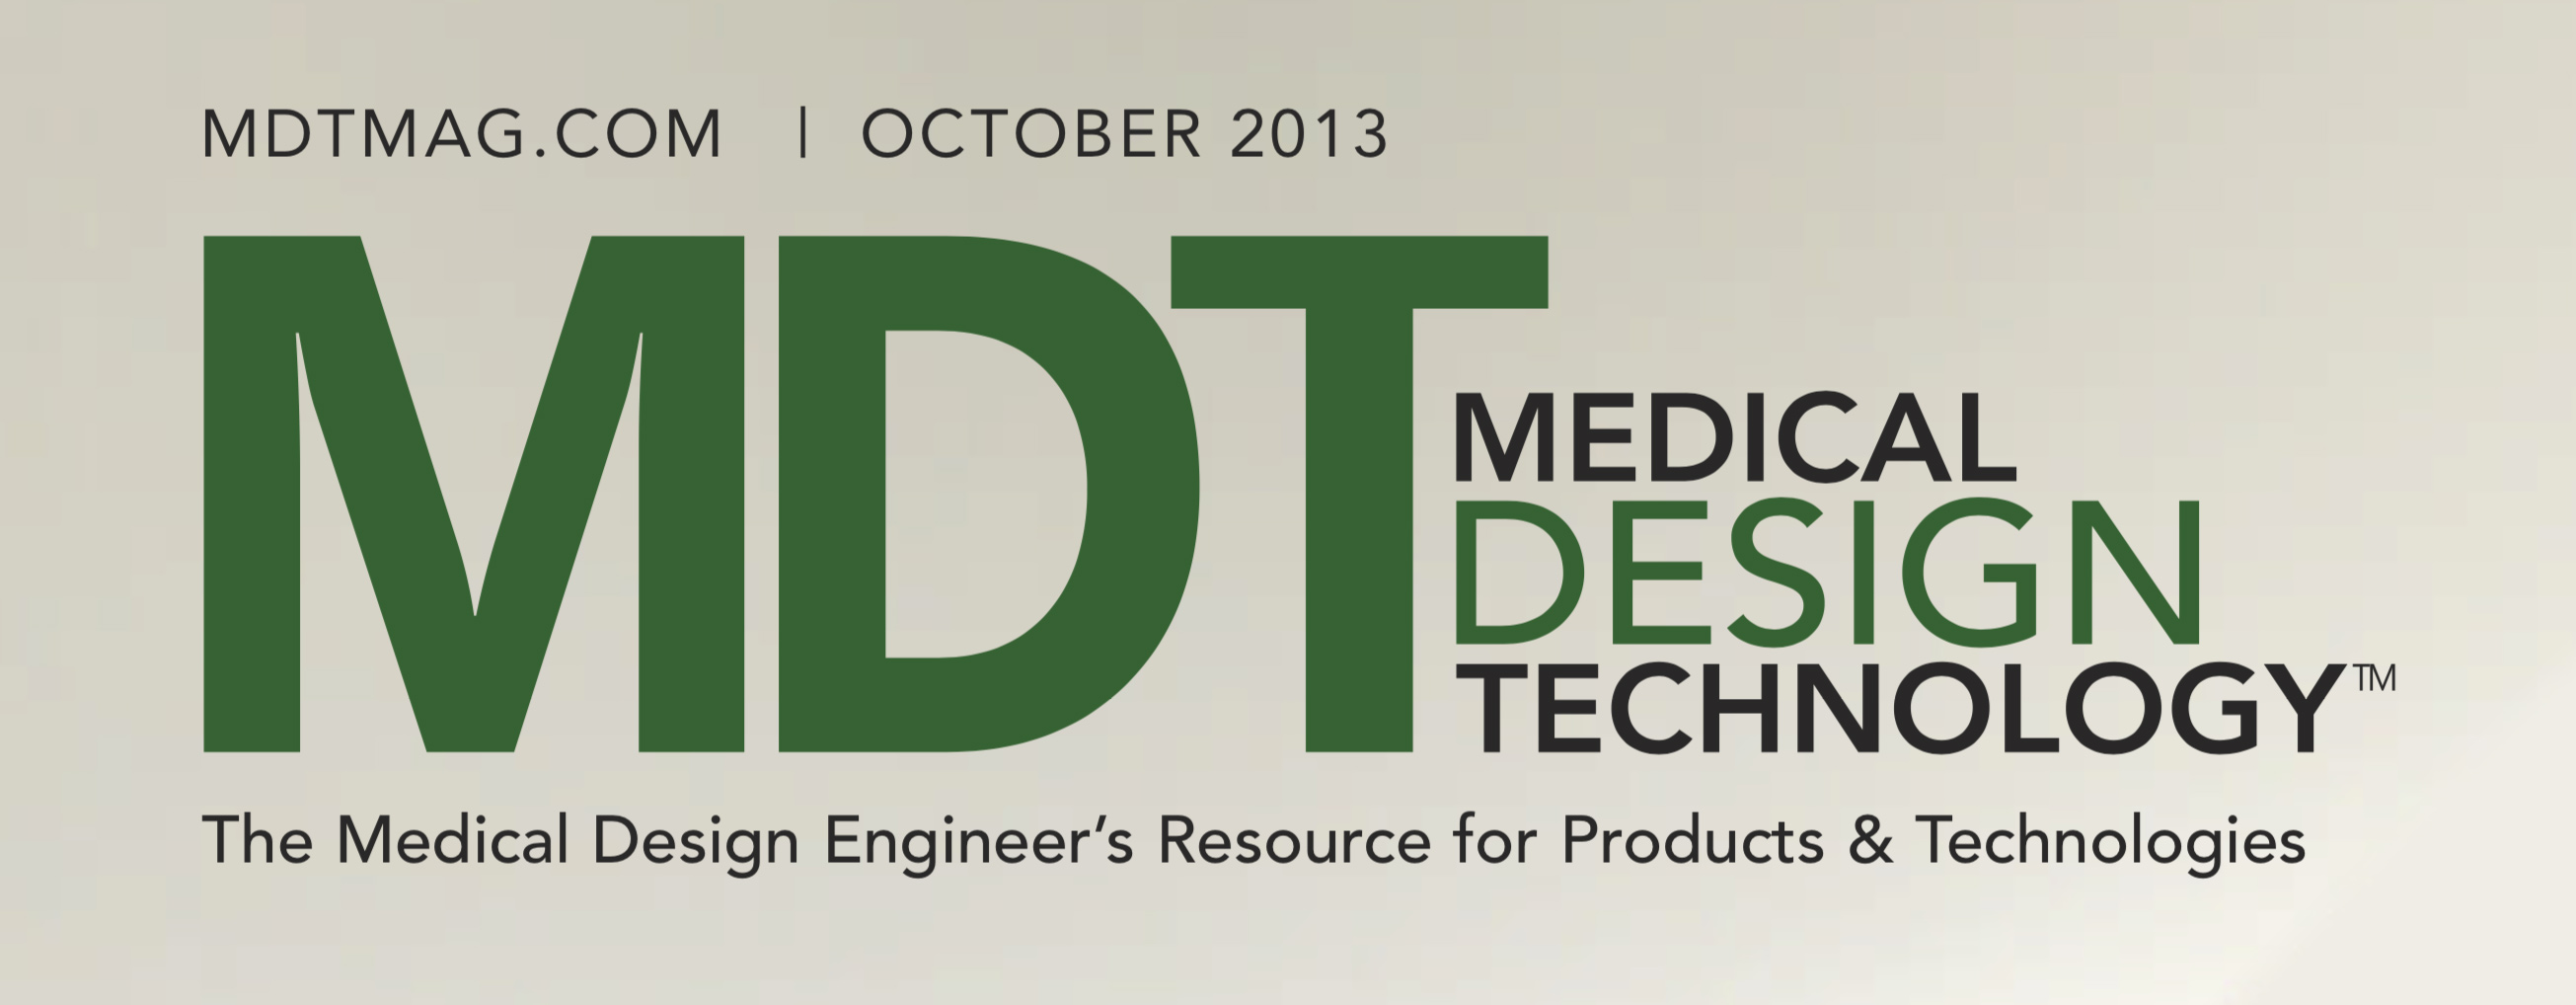 Featured in October 2013's issue of Medical Deisgn Technology.